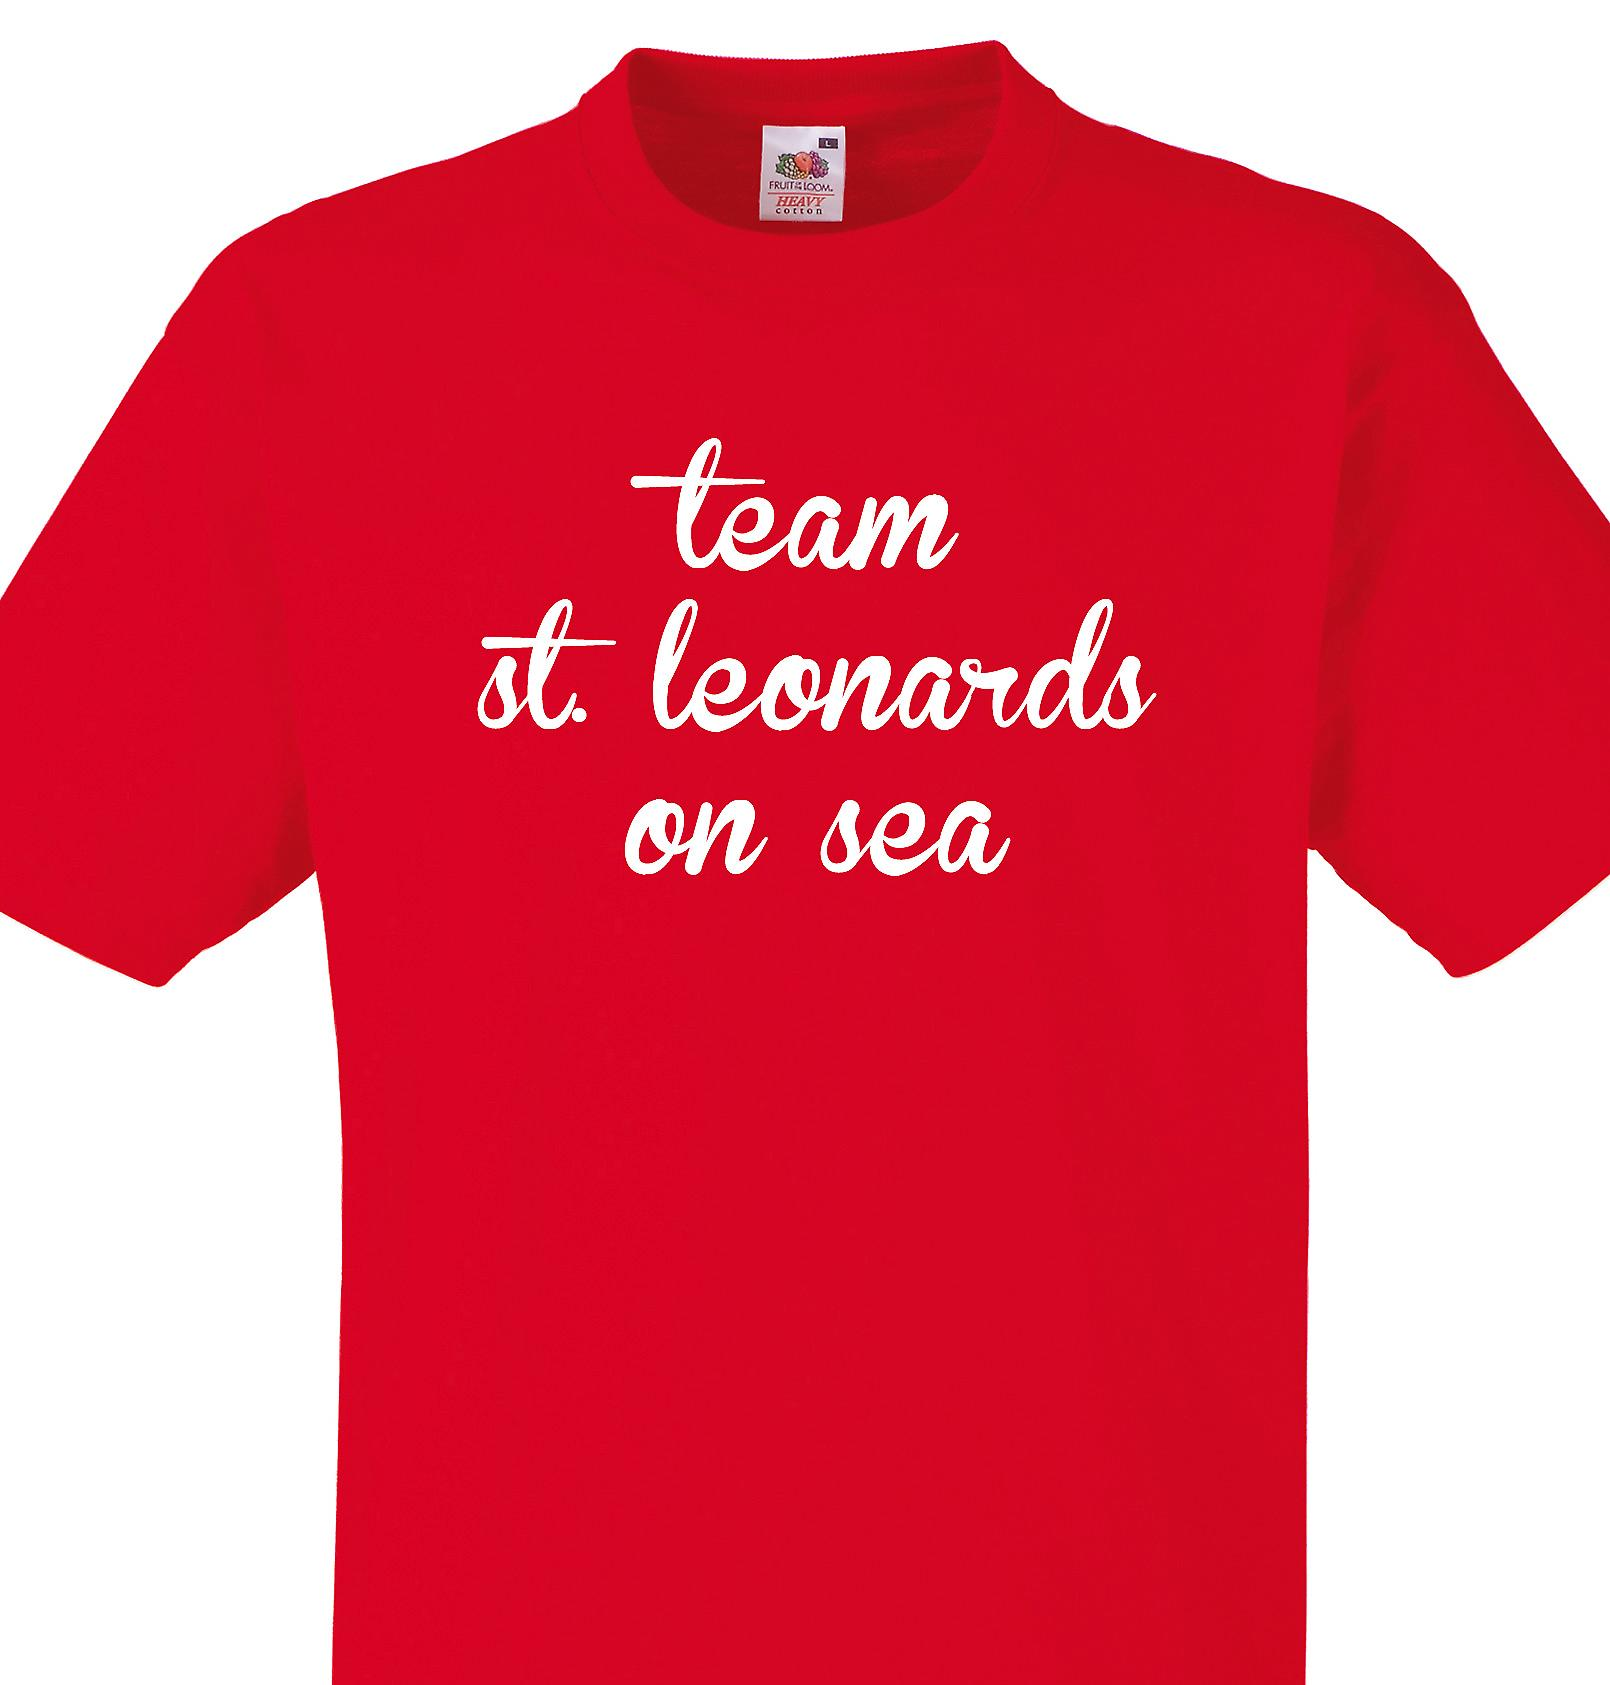 Team St. Leonards on sea Red T shirt